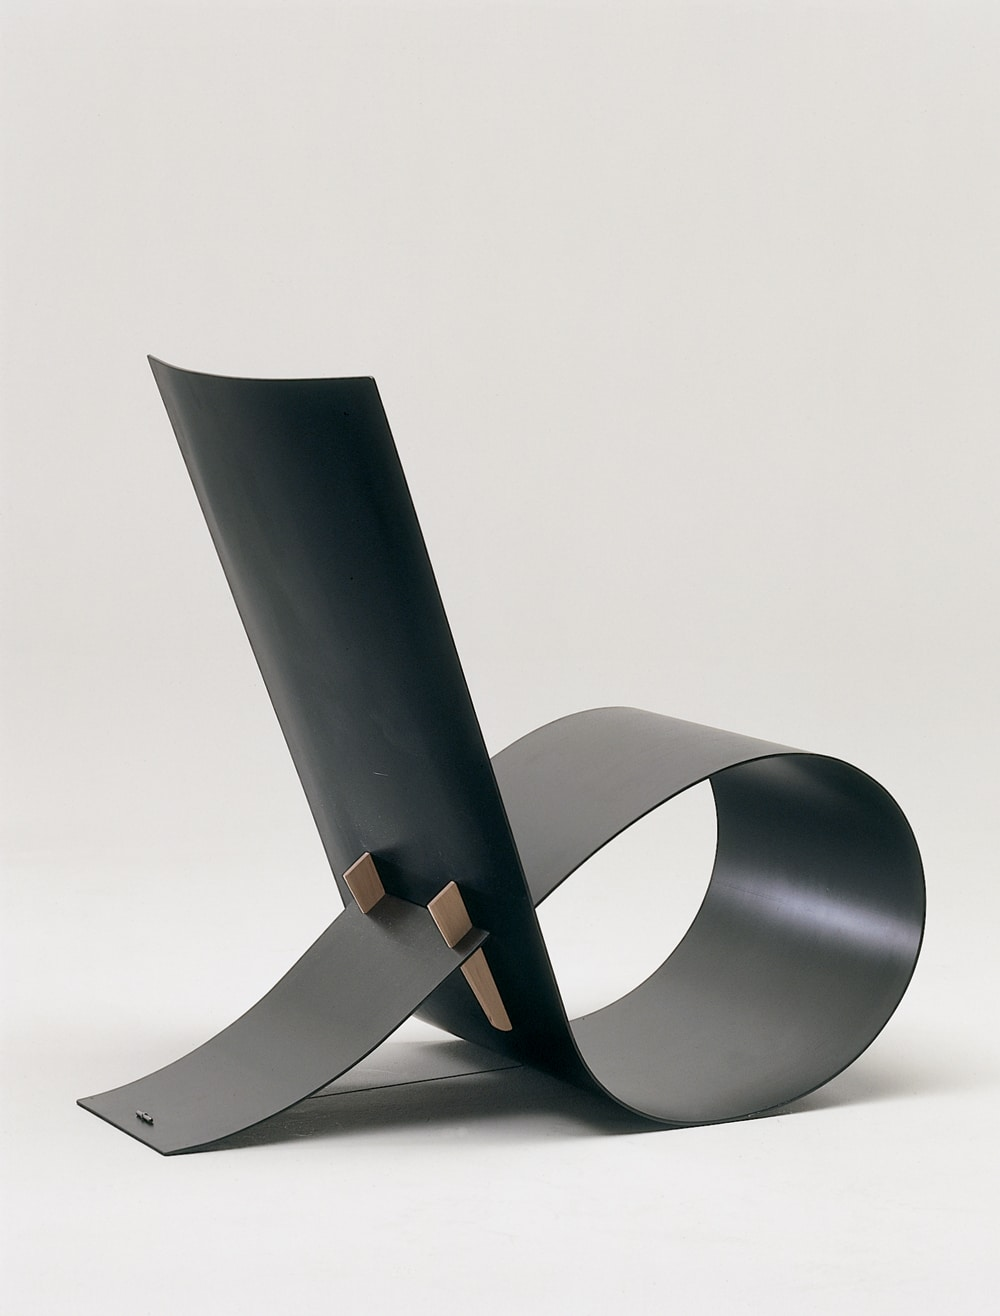 The sleek lines of the 1997 Loop chair by Niels Hvass are created in aluminum with wood details.